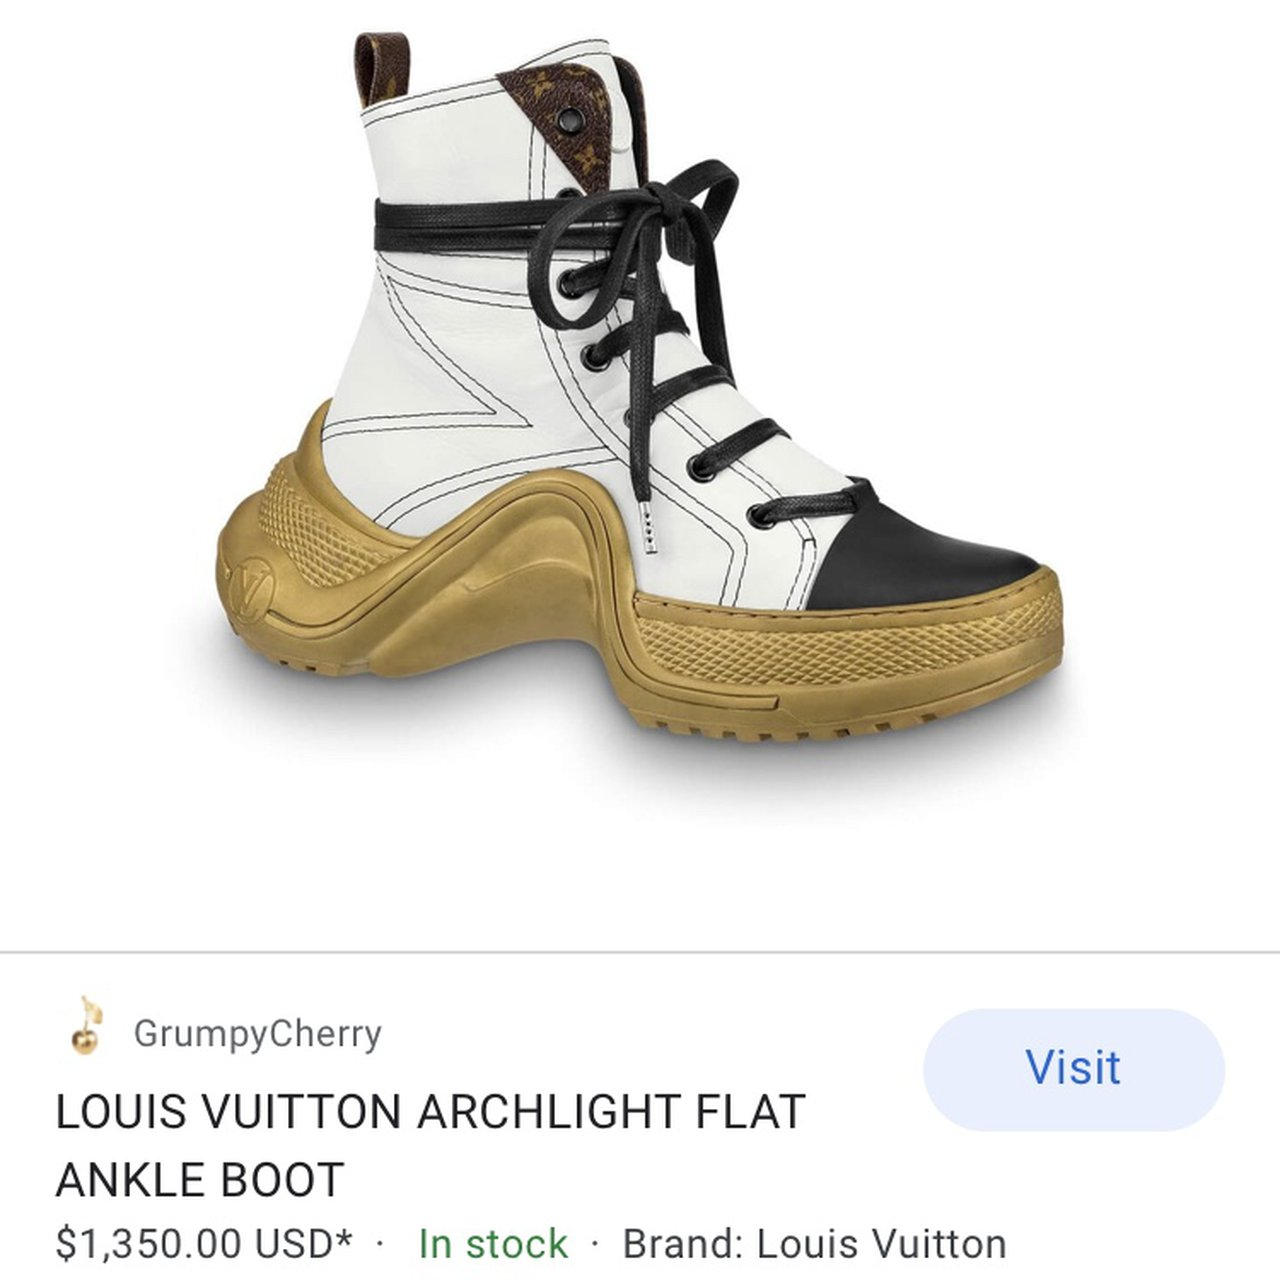 Louis Vuitton Archlight flat ankle boot